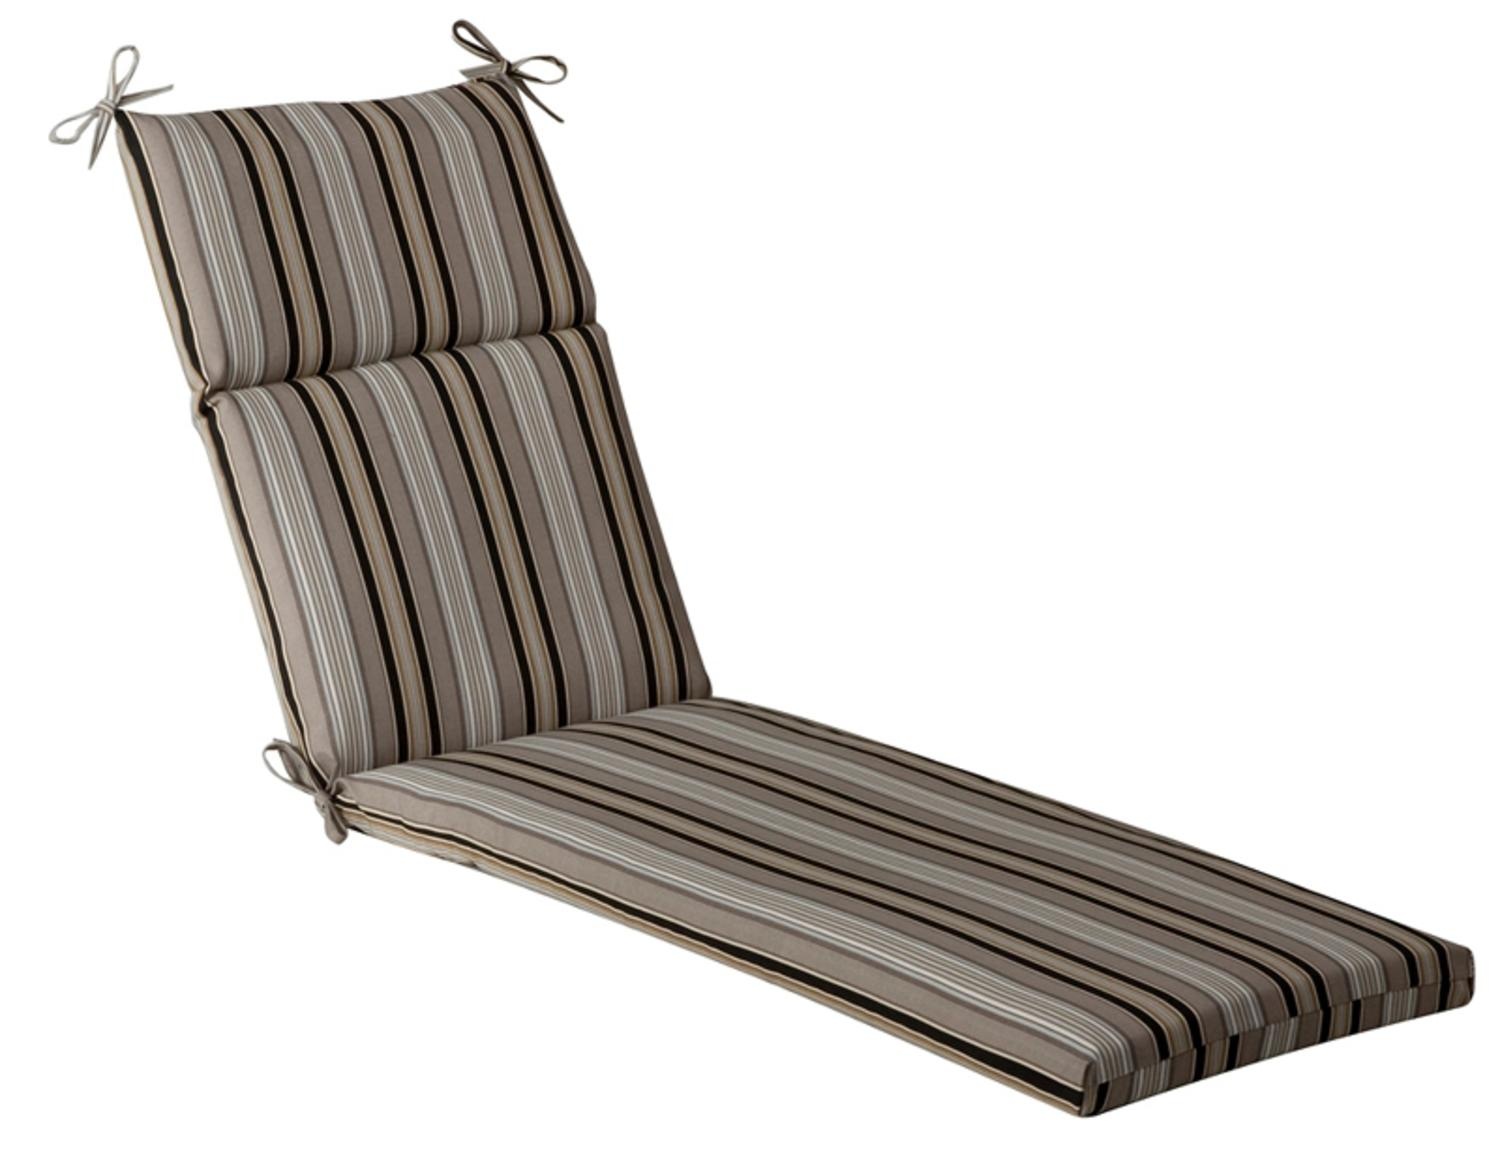 Outdoor Patio Furniture Chaise Lounge Cushion - Black u0026 Tan Striped Voyage  sc 1 st  Walmart : chaise patio cushions - Sectionals, Sofas & Couches